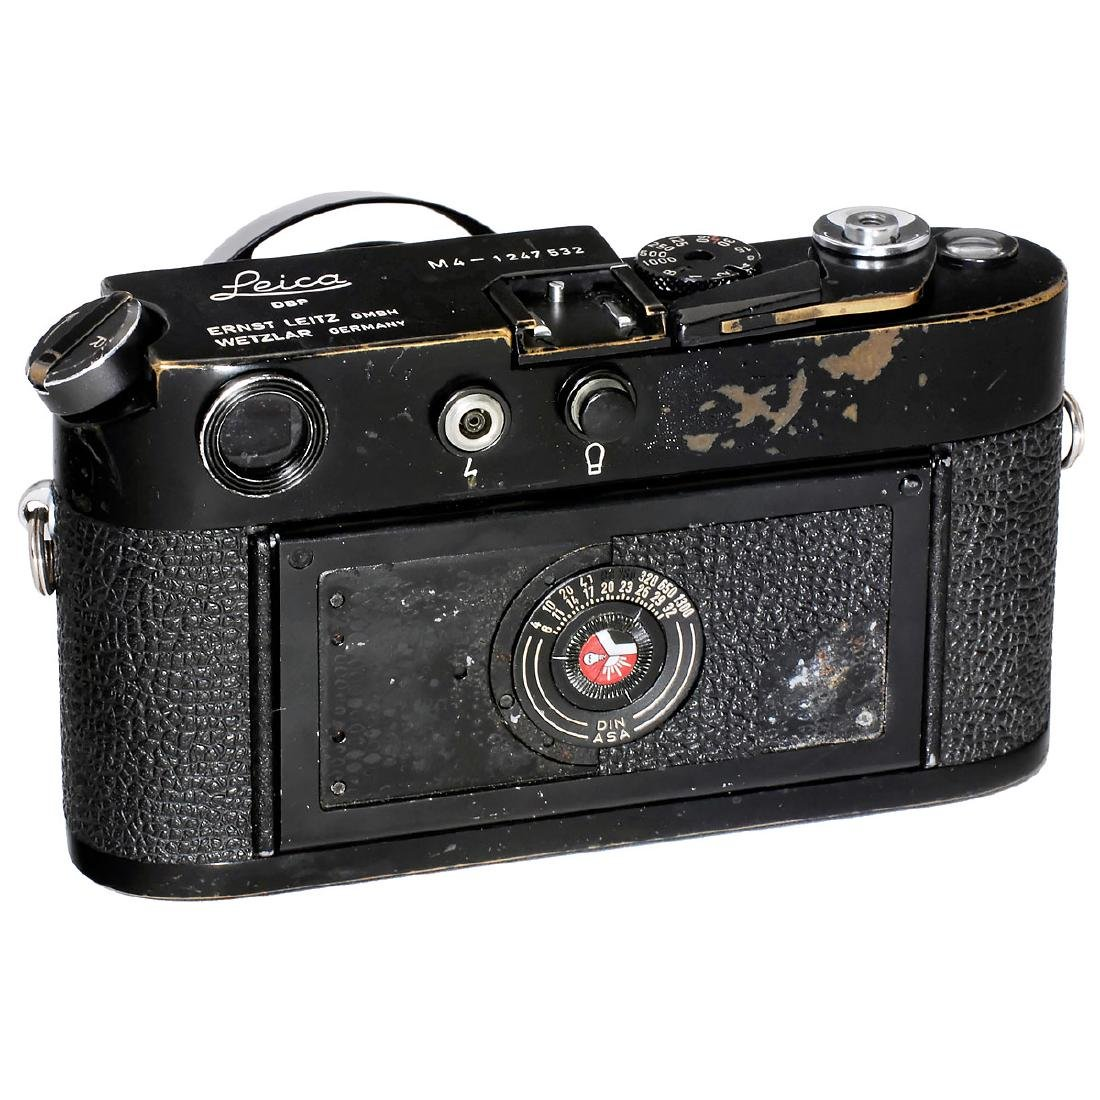 Leica M4 (Black Paint) with Summicron 2/50, 1969 - 2